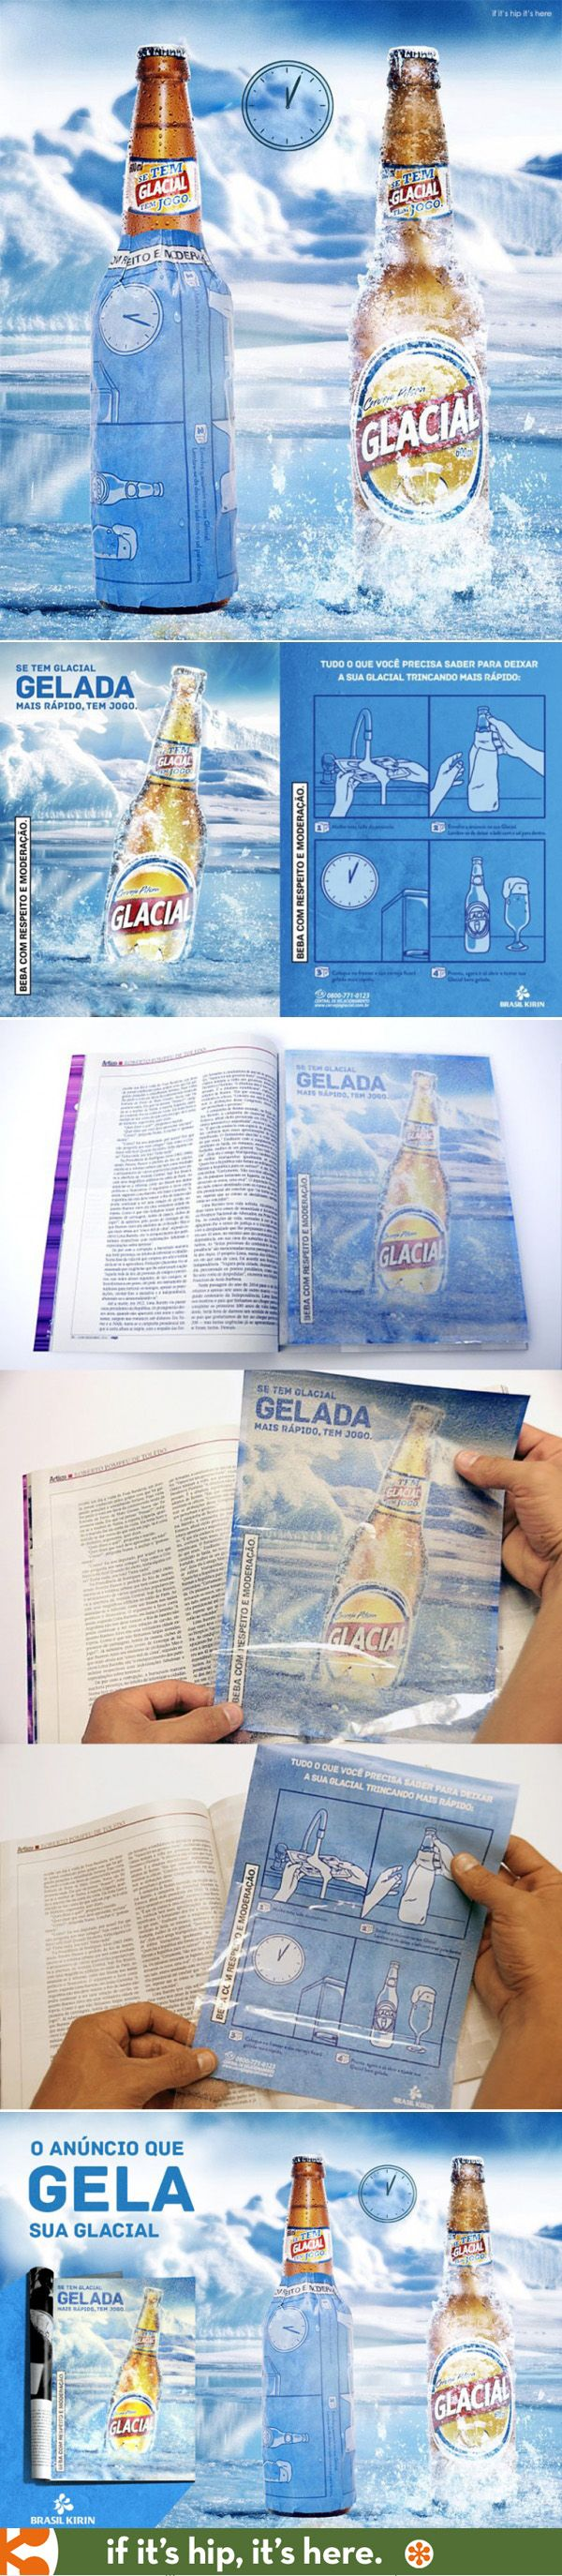 This innovate print ad can be torn out of the magazine, soaked in water and then wrapped around your beer bottle to chill it in half the time a fridge would! | http://www.ifitshipitshere.com/latest-innovative-print-ad-glacial-beer-will-leave-cold/